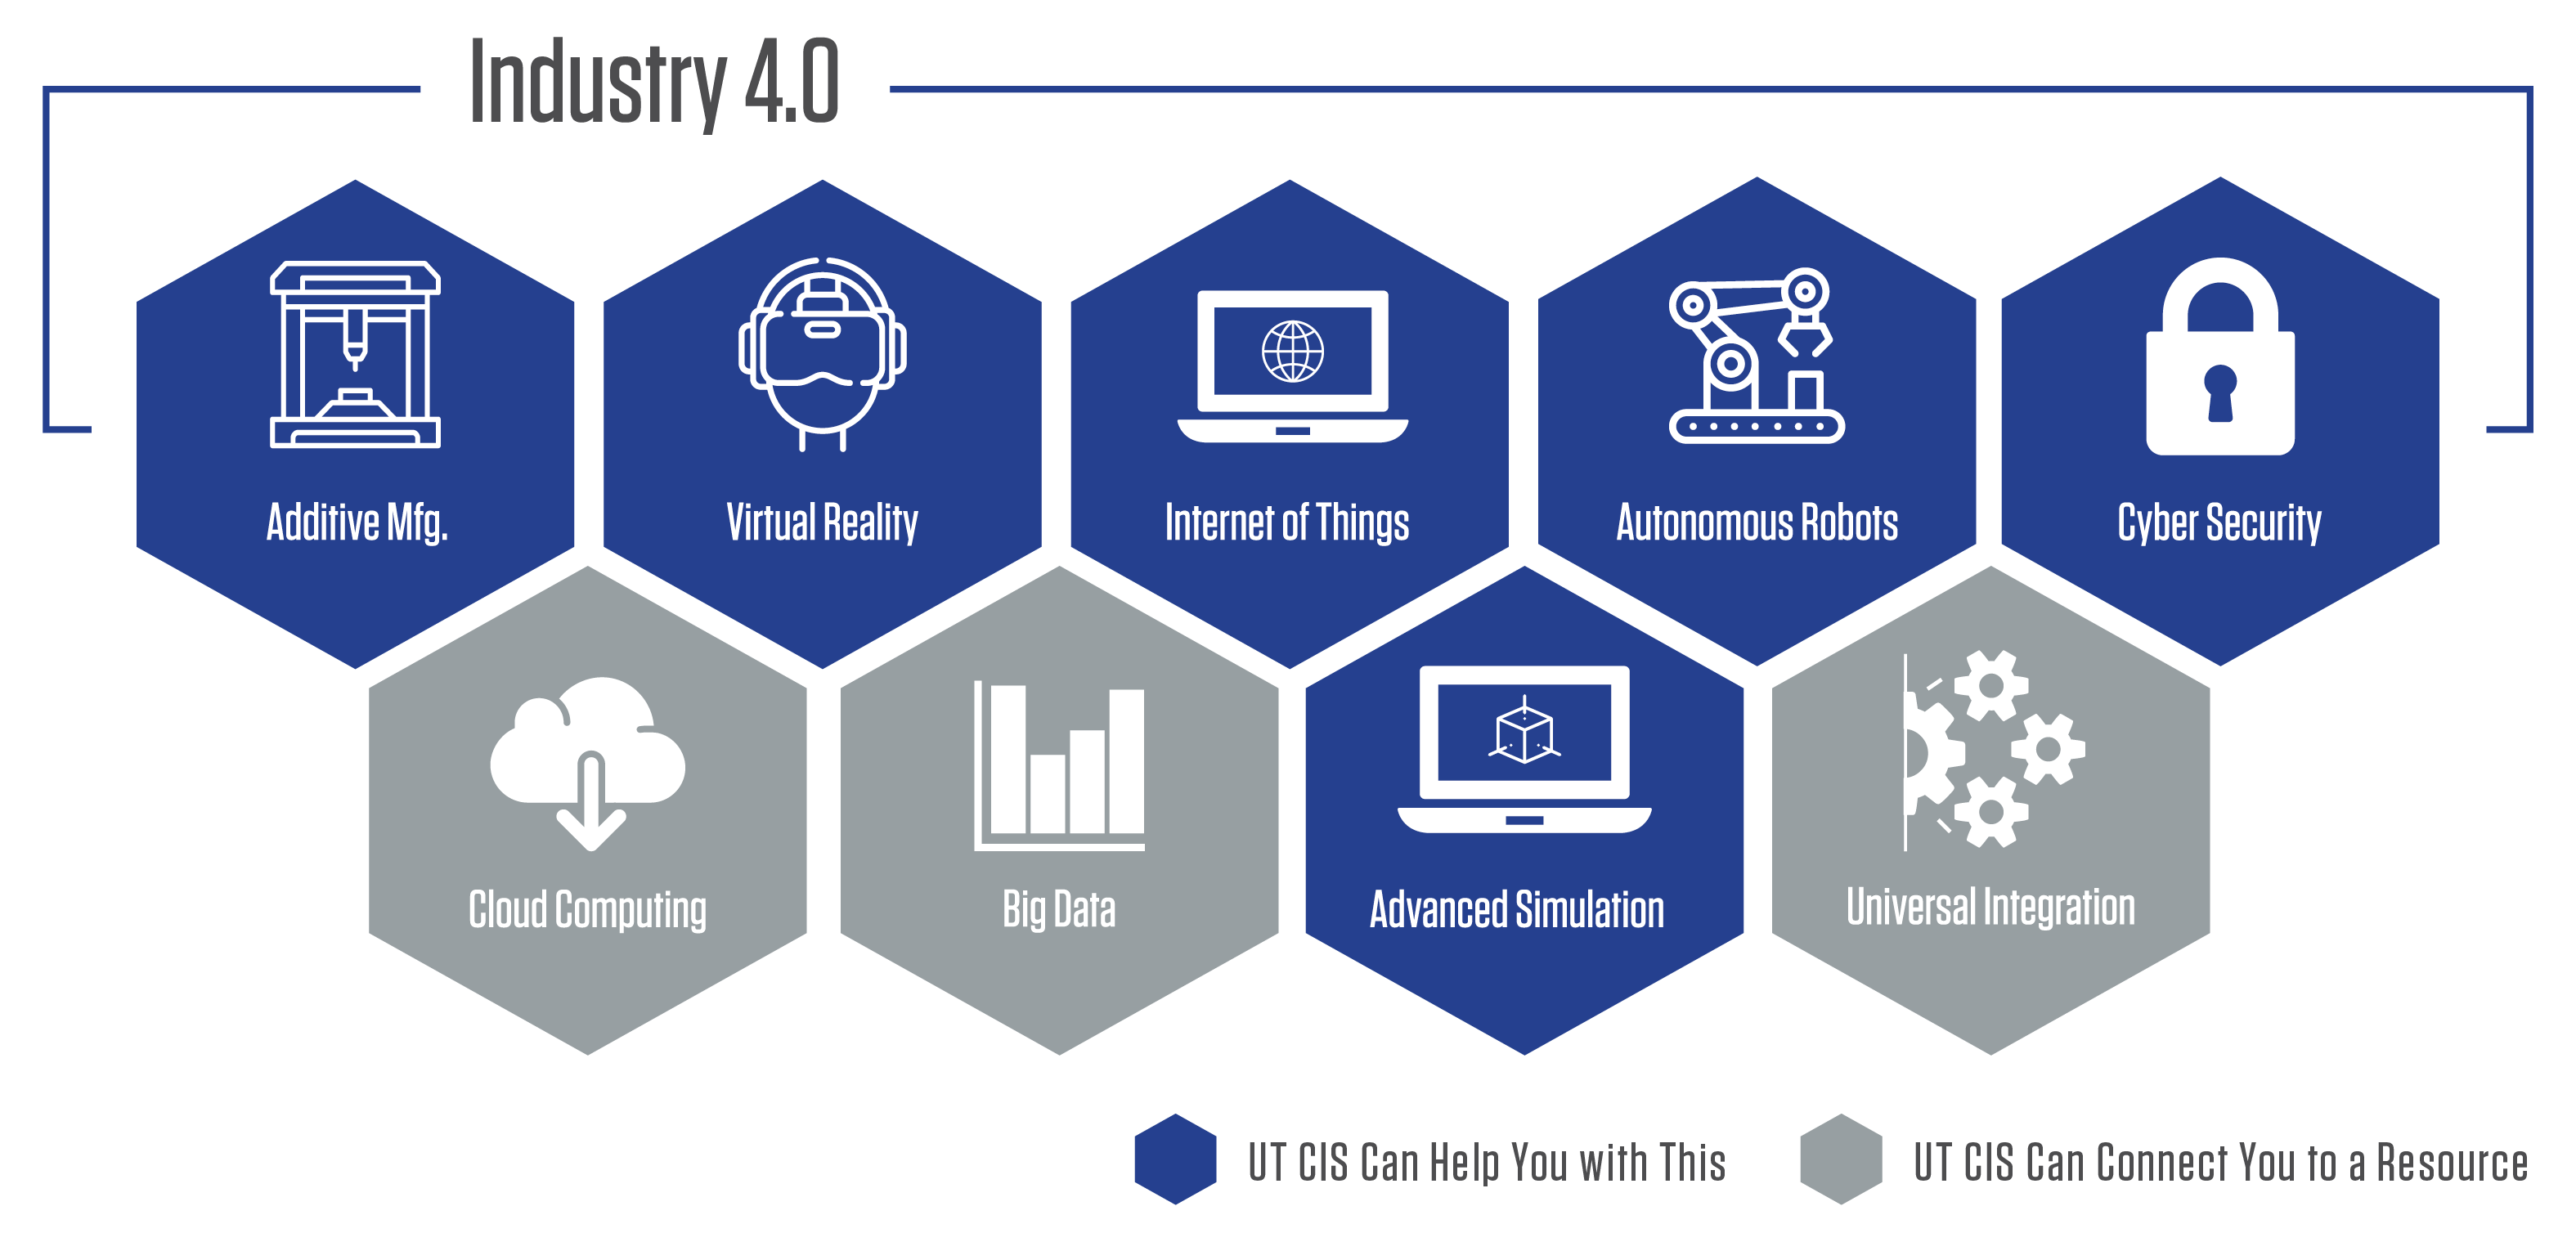 Industry 4.0 UT CIS